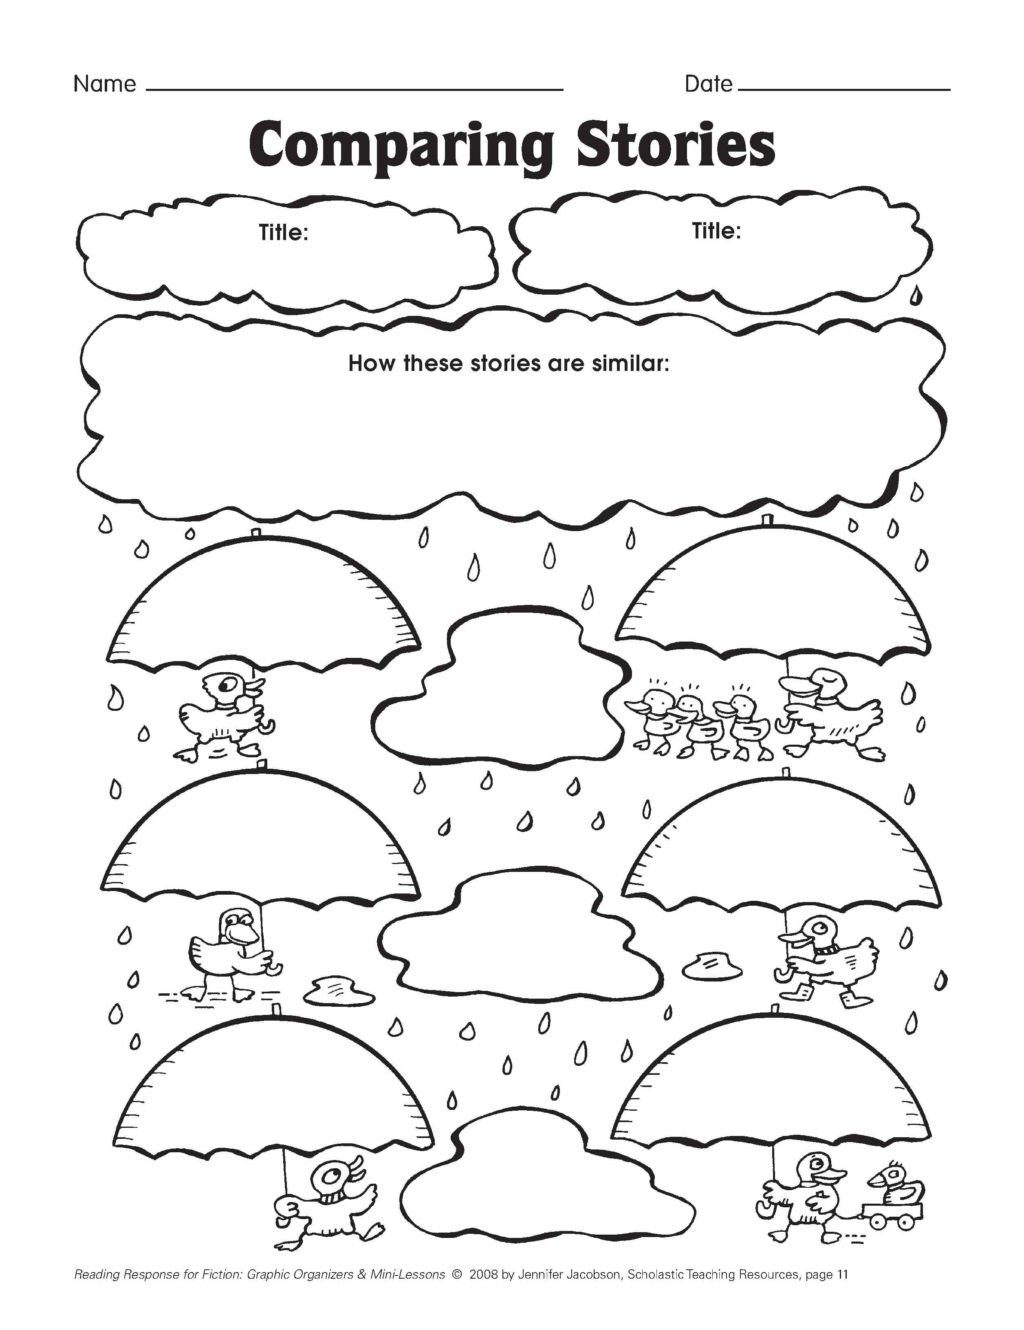 five minute reading responses scholastic first grade exercises paring stories math worksheet free 1024x1330